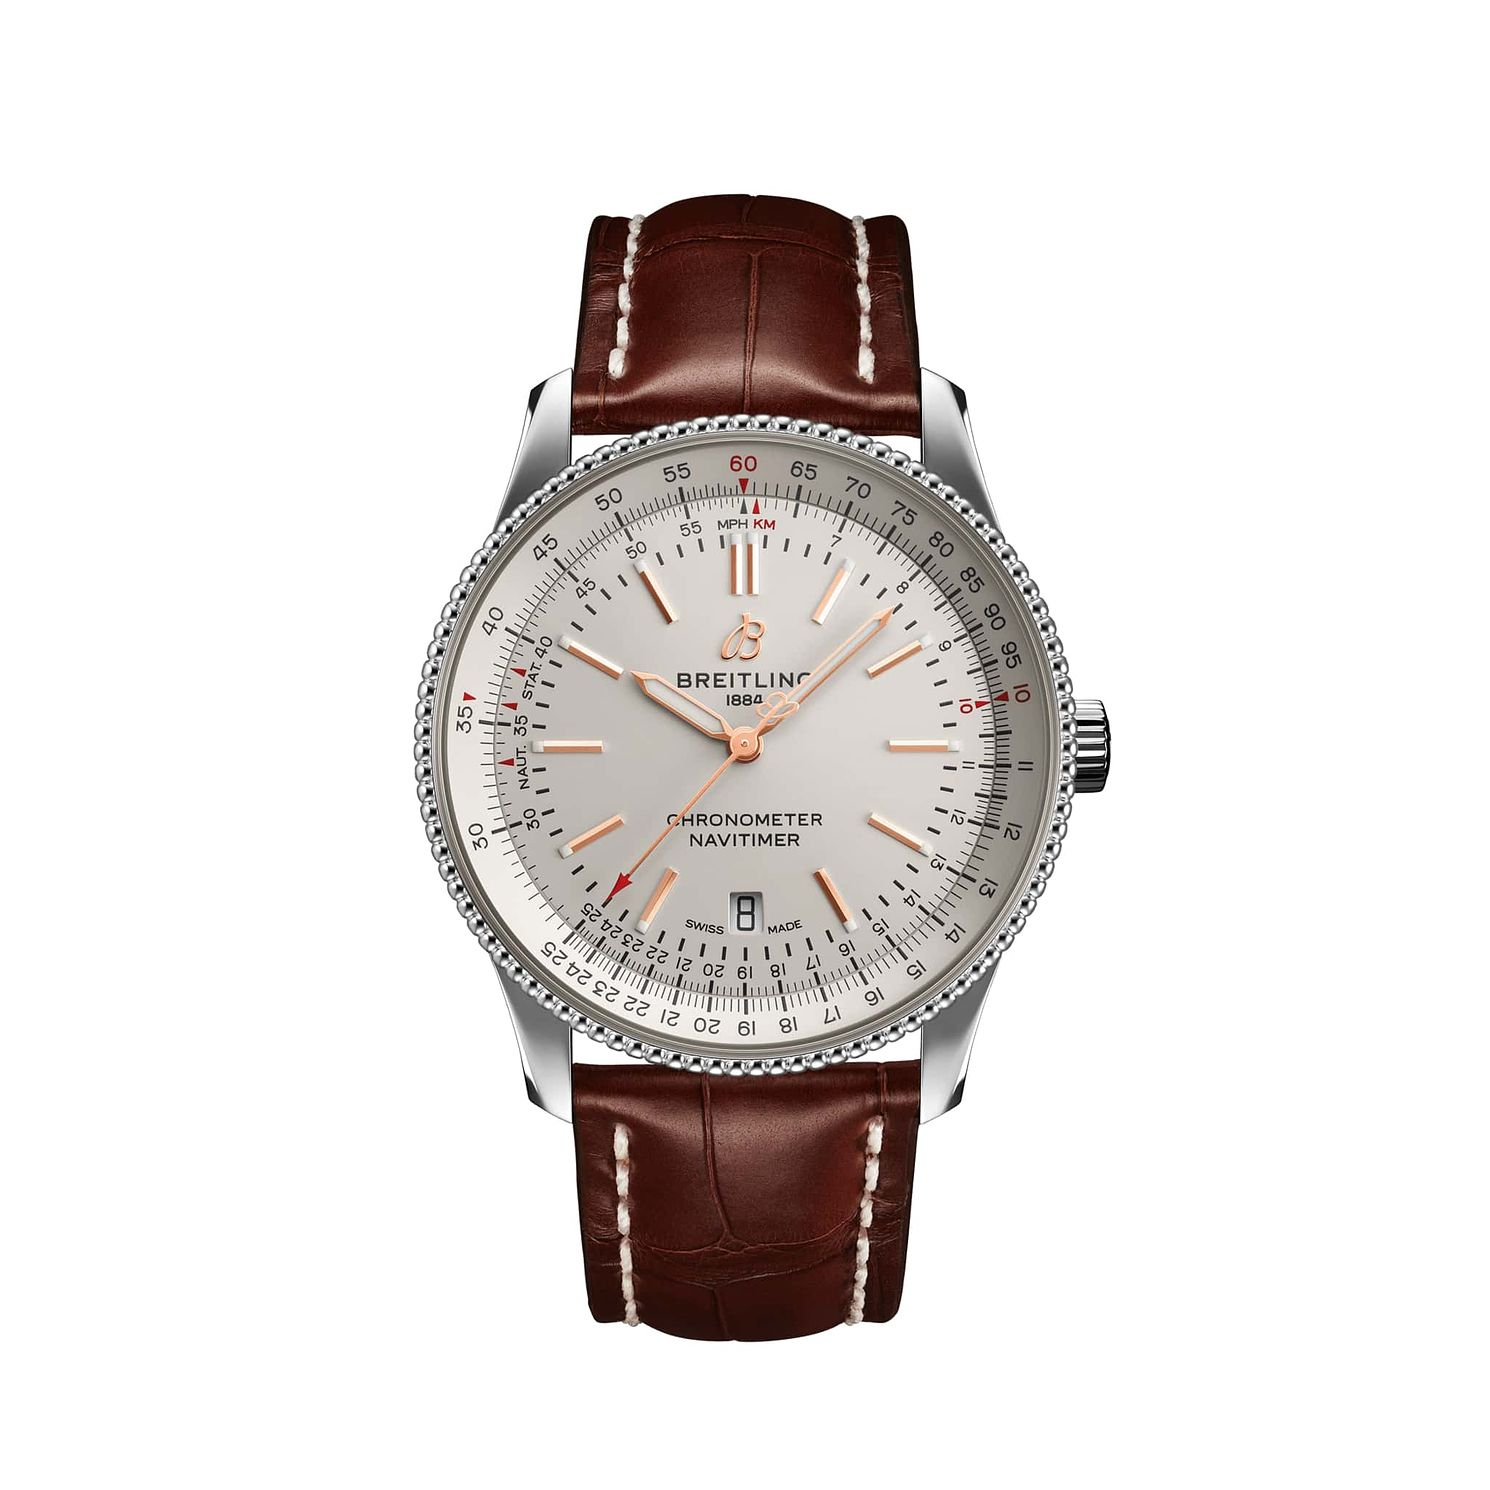 Breitling Navitimer Men's Brown Leather Strap Watch - Product number 2465582